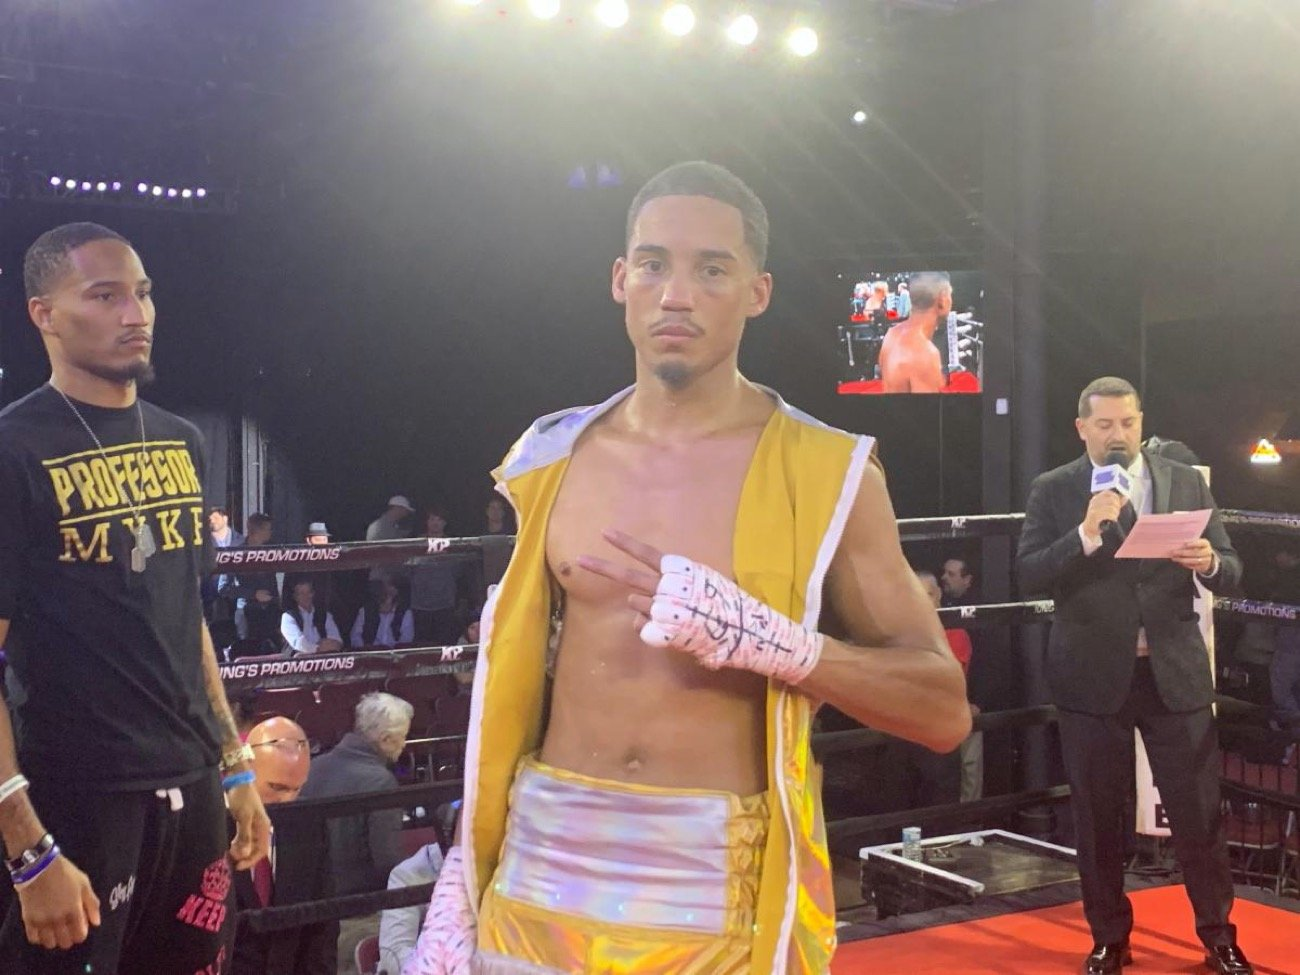 World Ranked welterweight Mykal Fox won a eight-round unanimous decision over Johnny Arellano in the main event of a seven bout show at the 2300 Arena in Philadelphia.